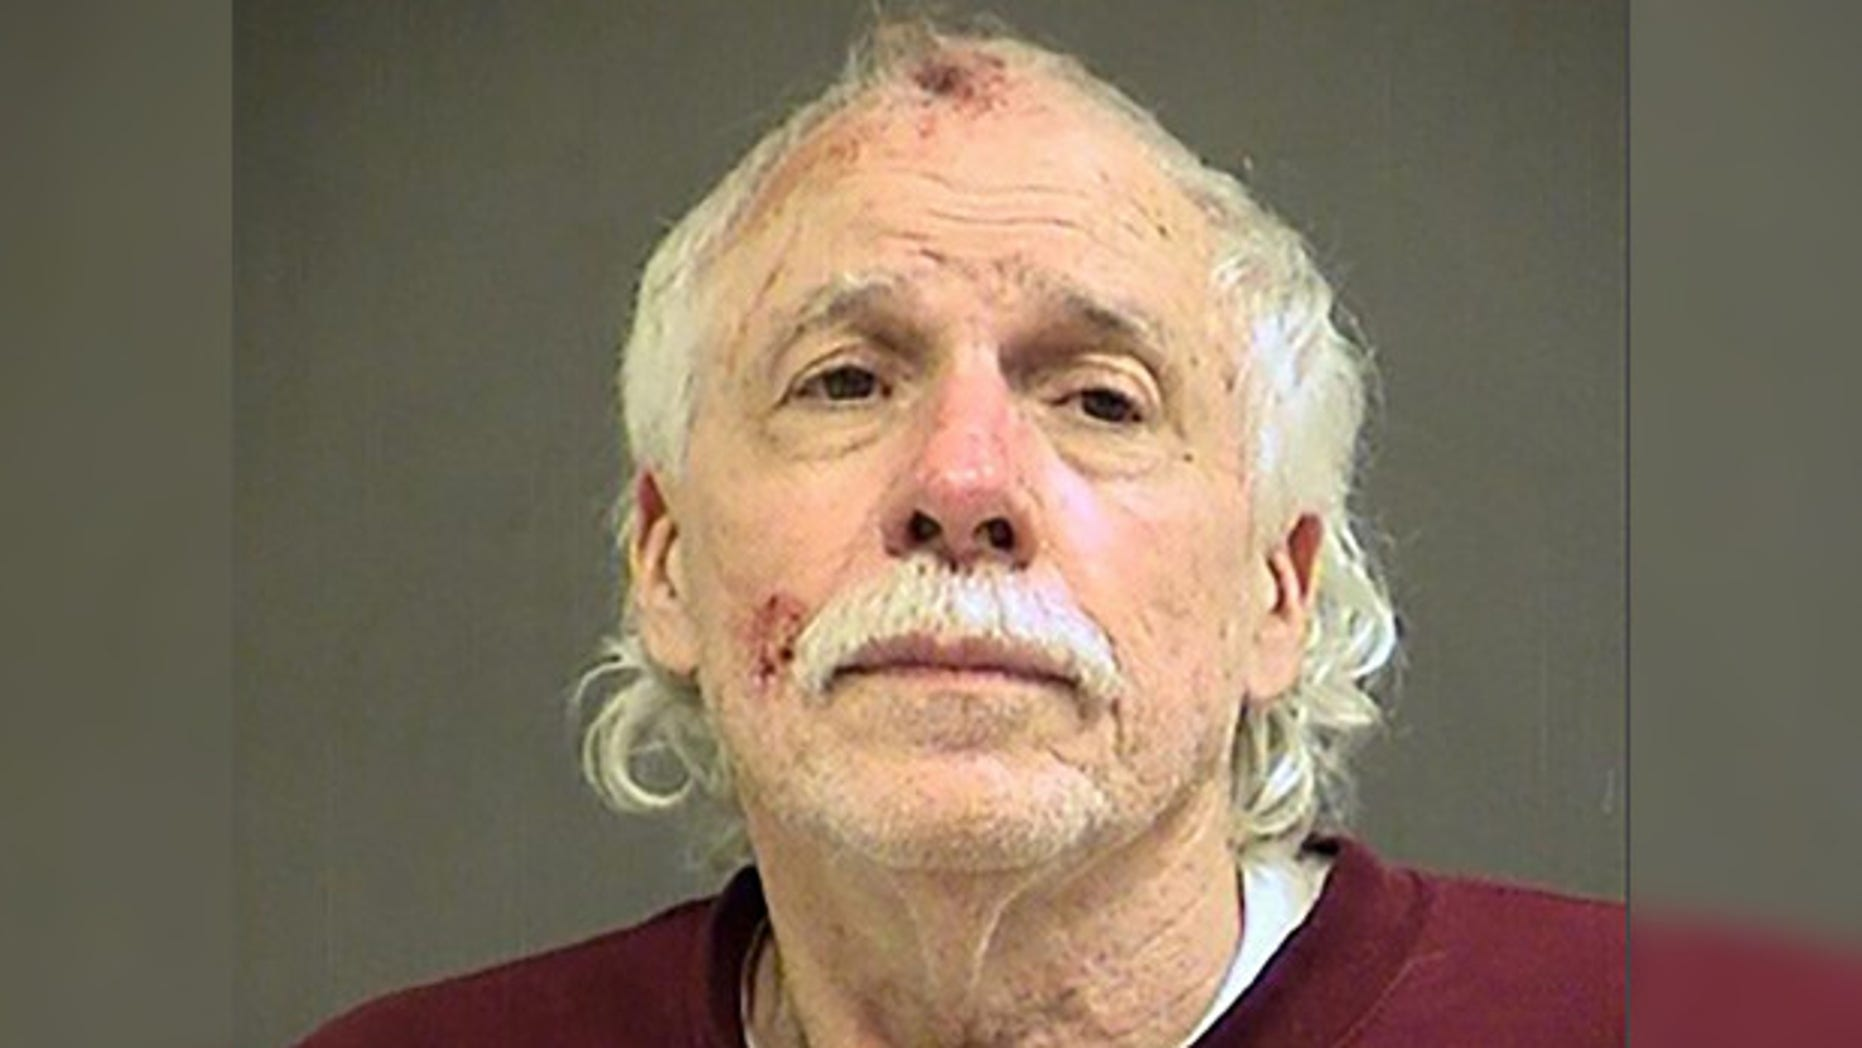 Leo Miller, 71, is accused of trying to suffocate a 74-year-old woman who took him in as a roomate. He was allegedly upset over his share of the electric bill.